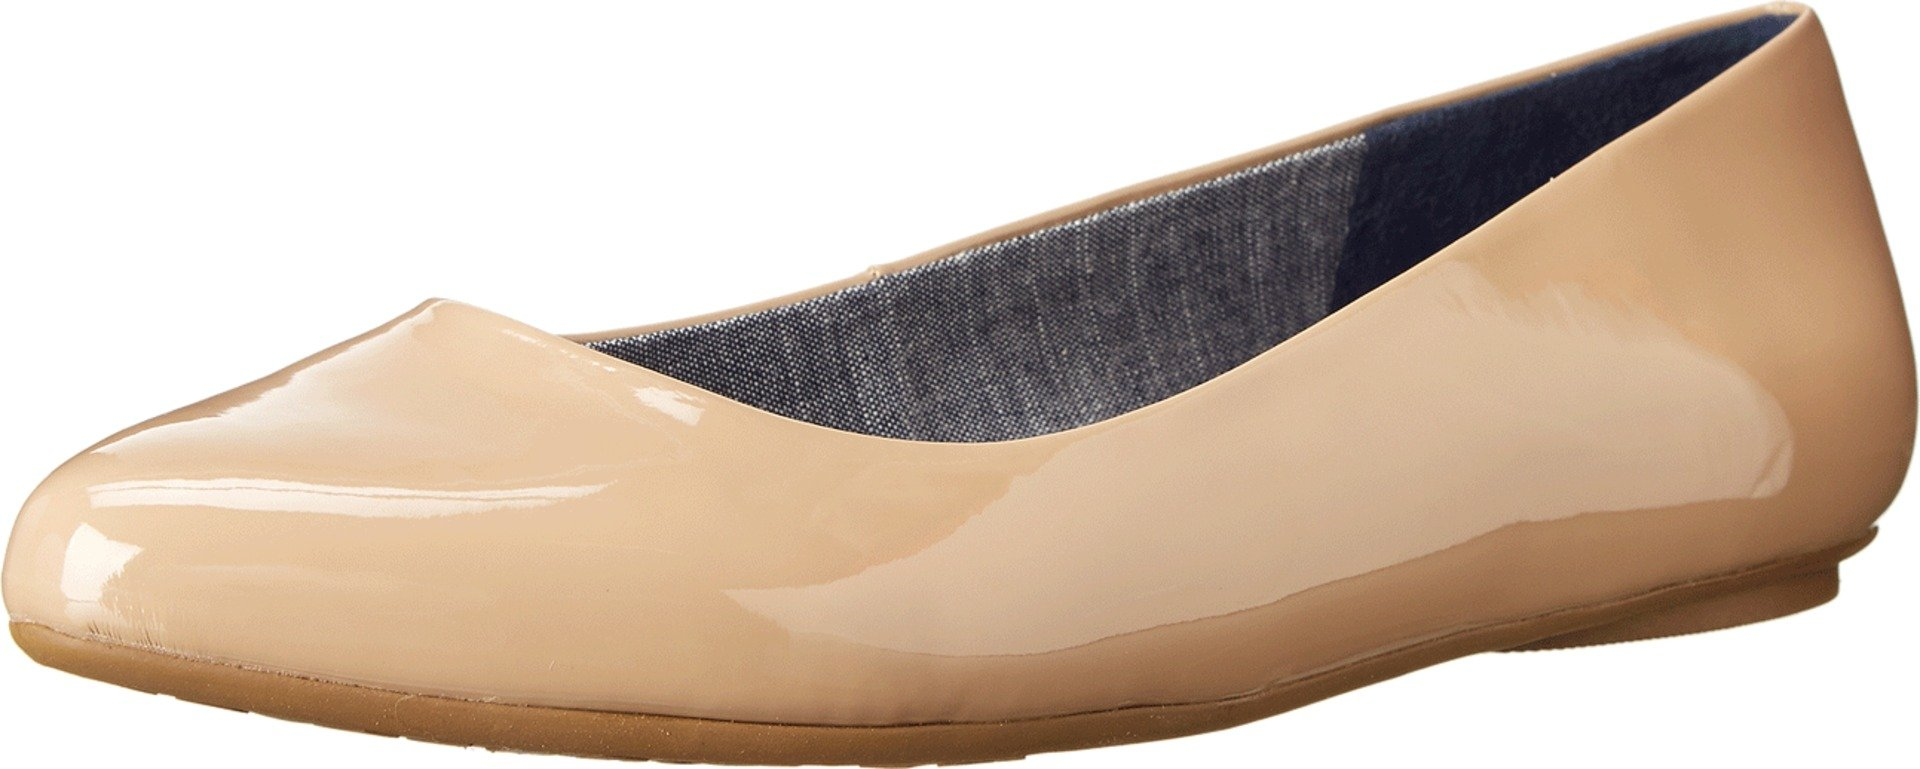 Dr. Scholl's Women's Sand Patent Flat  Shoes - 9 C/D US